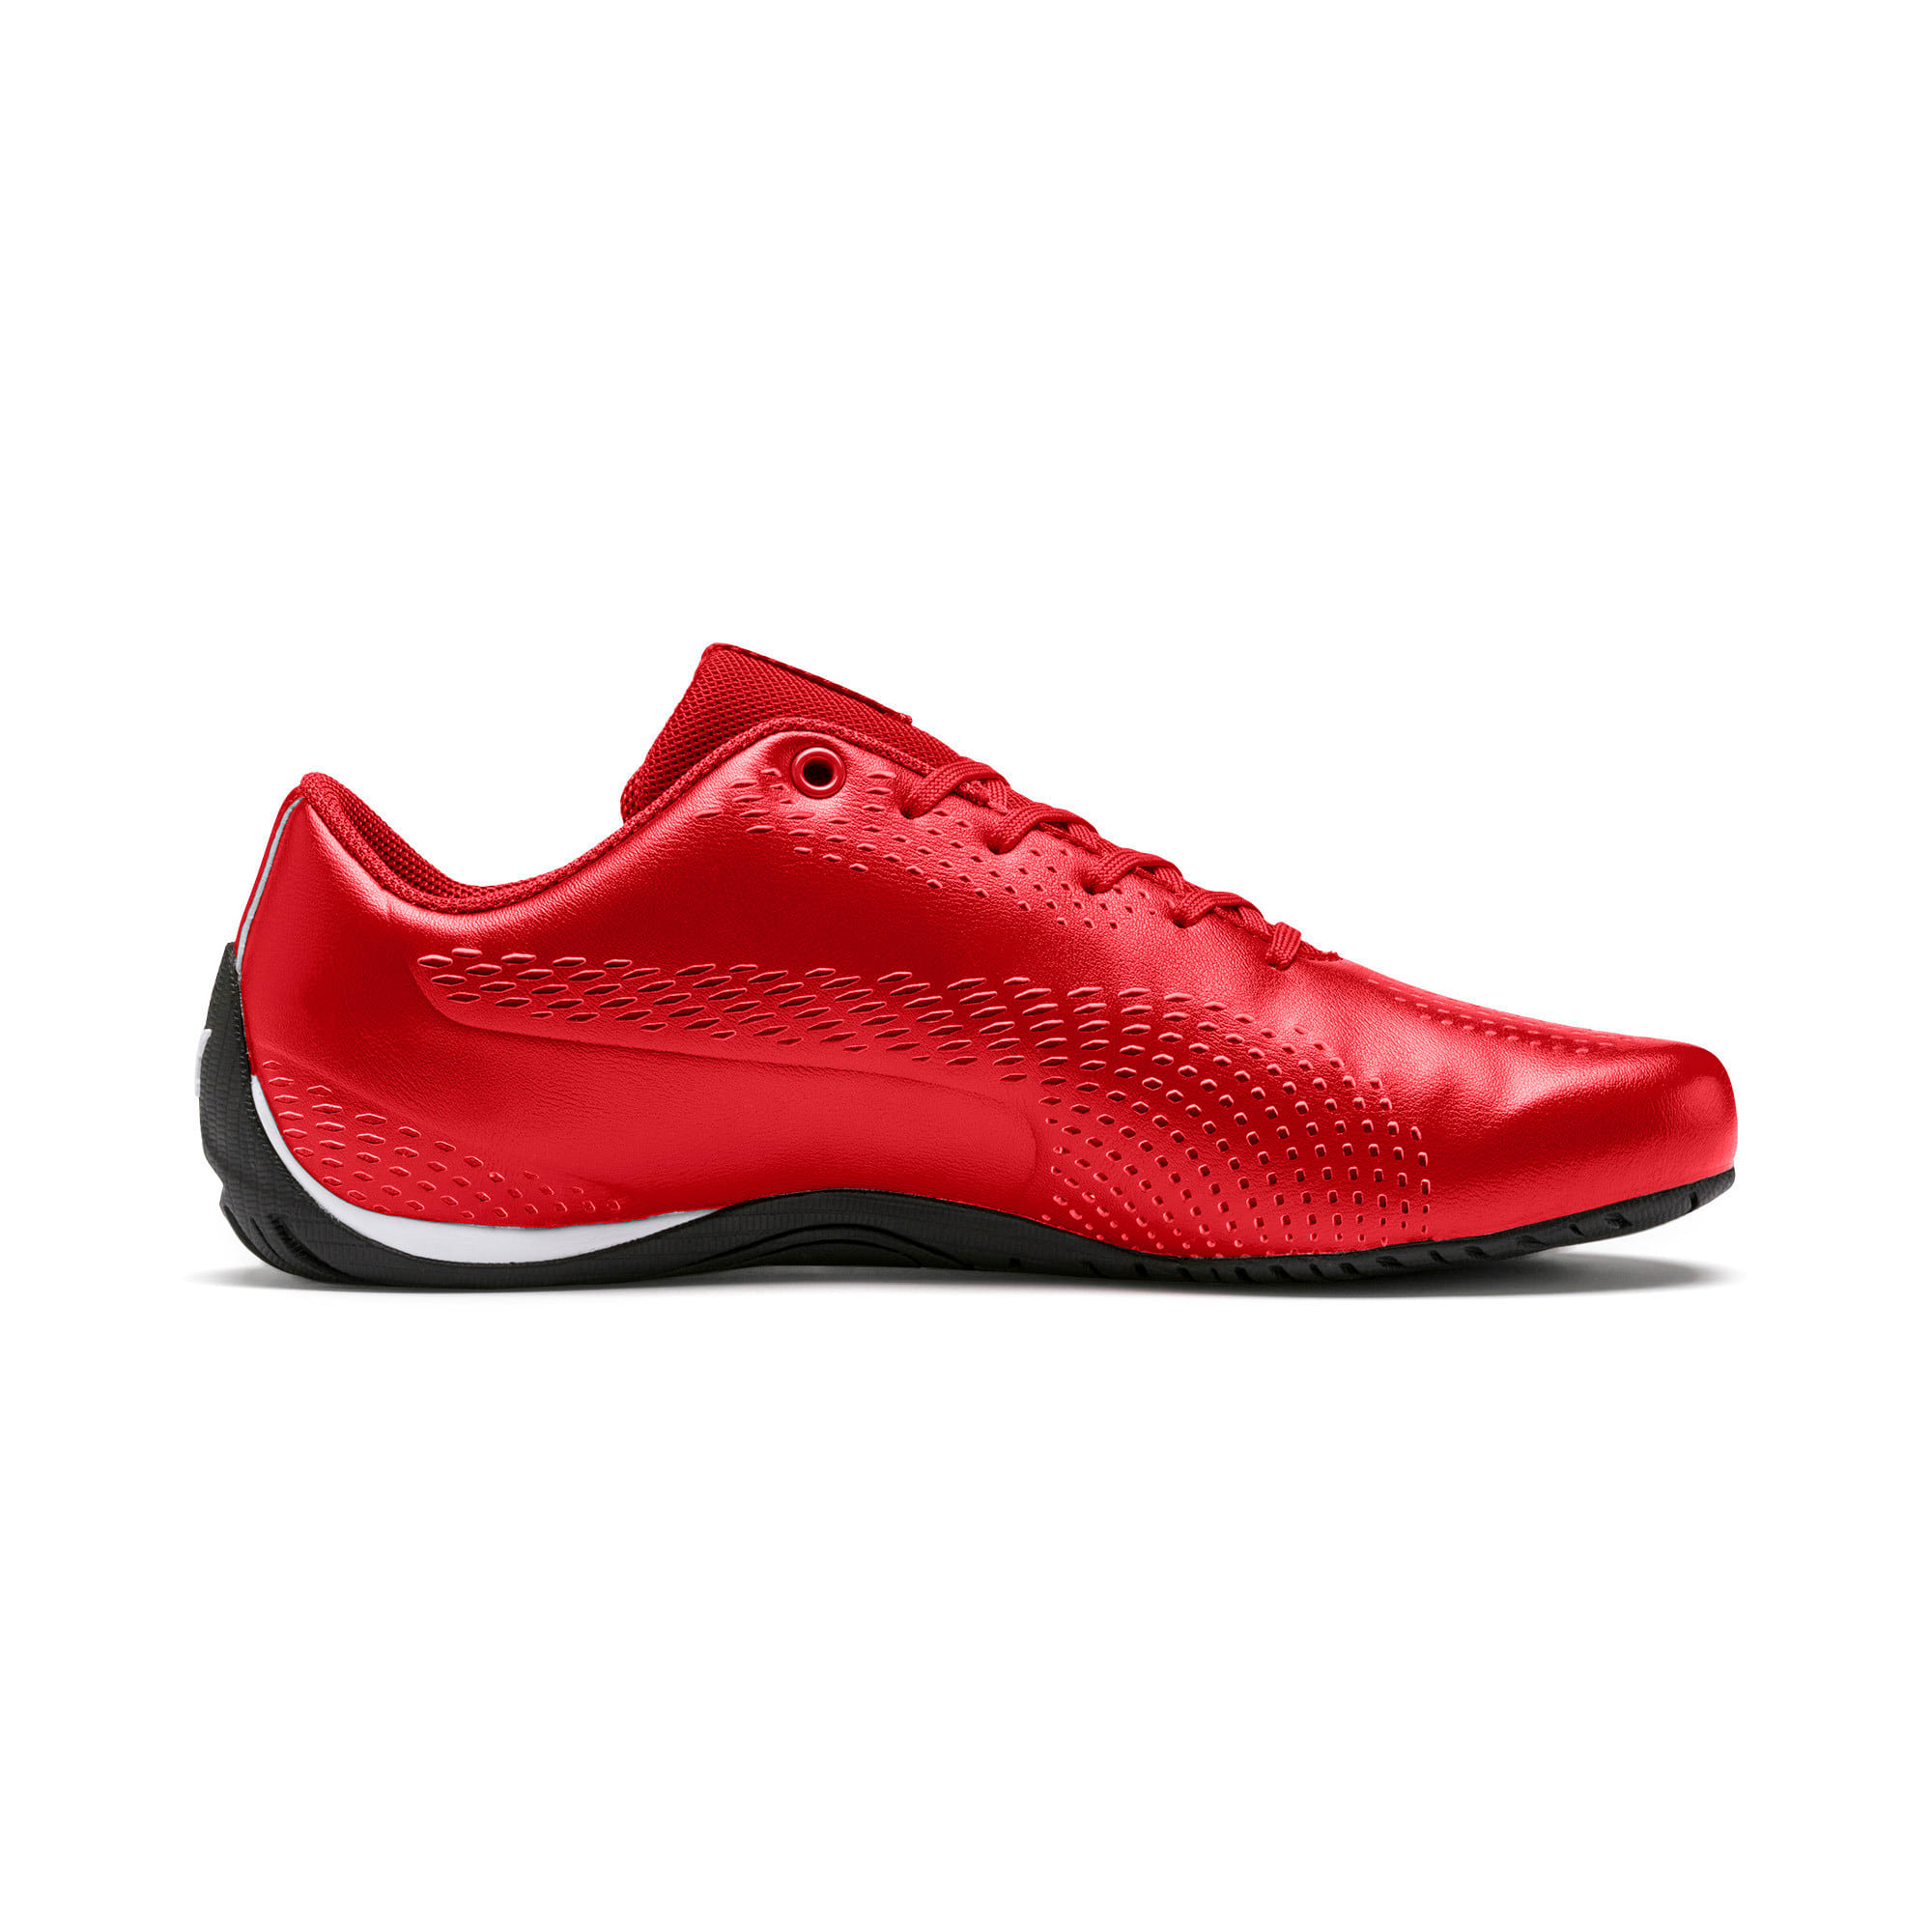 Thumbnail 6 of Ferrari Drift Cat 5 Ultra II Sneaker, Rosso Corsa-Puma White, medium